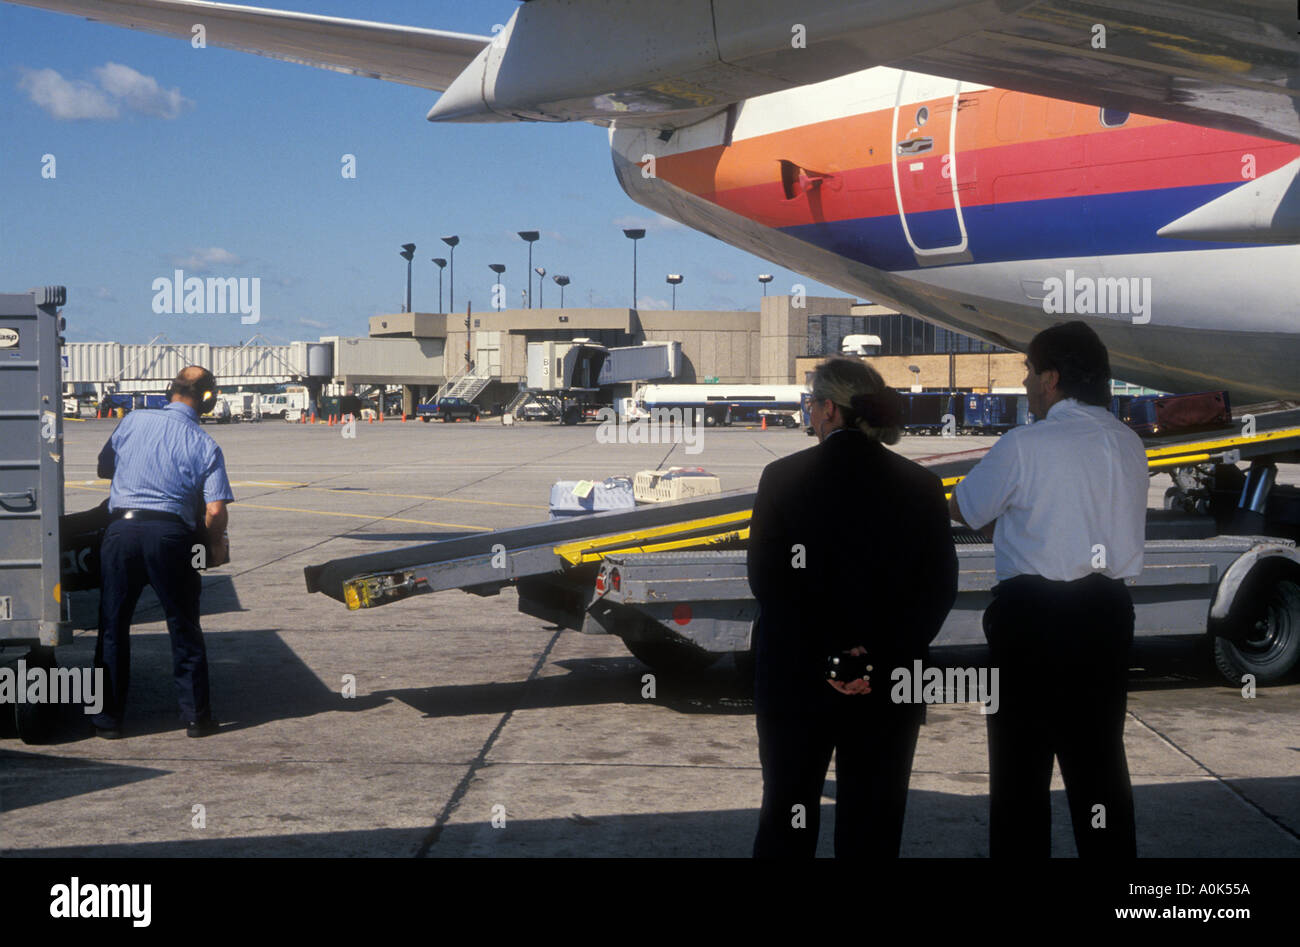 United Air Lines supervisors watch baggage handler unload jet at Detroit airport - Stock Image